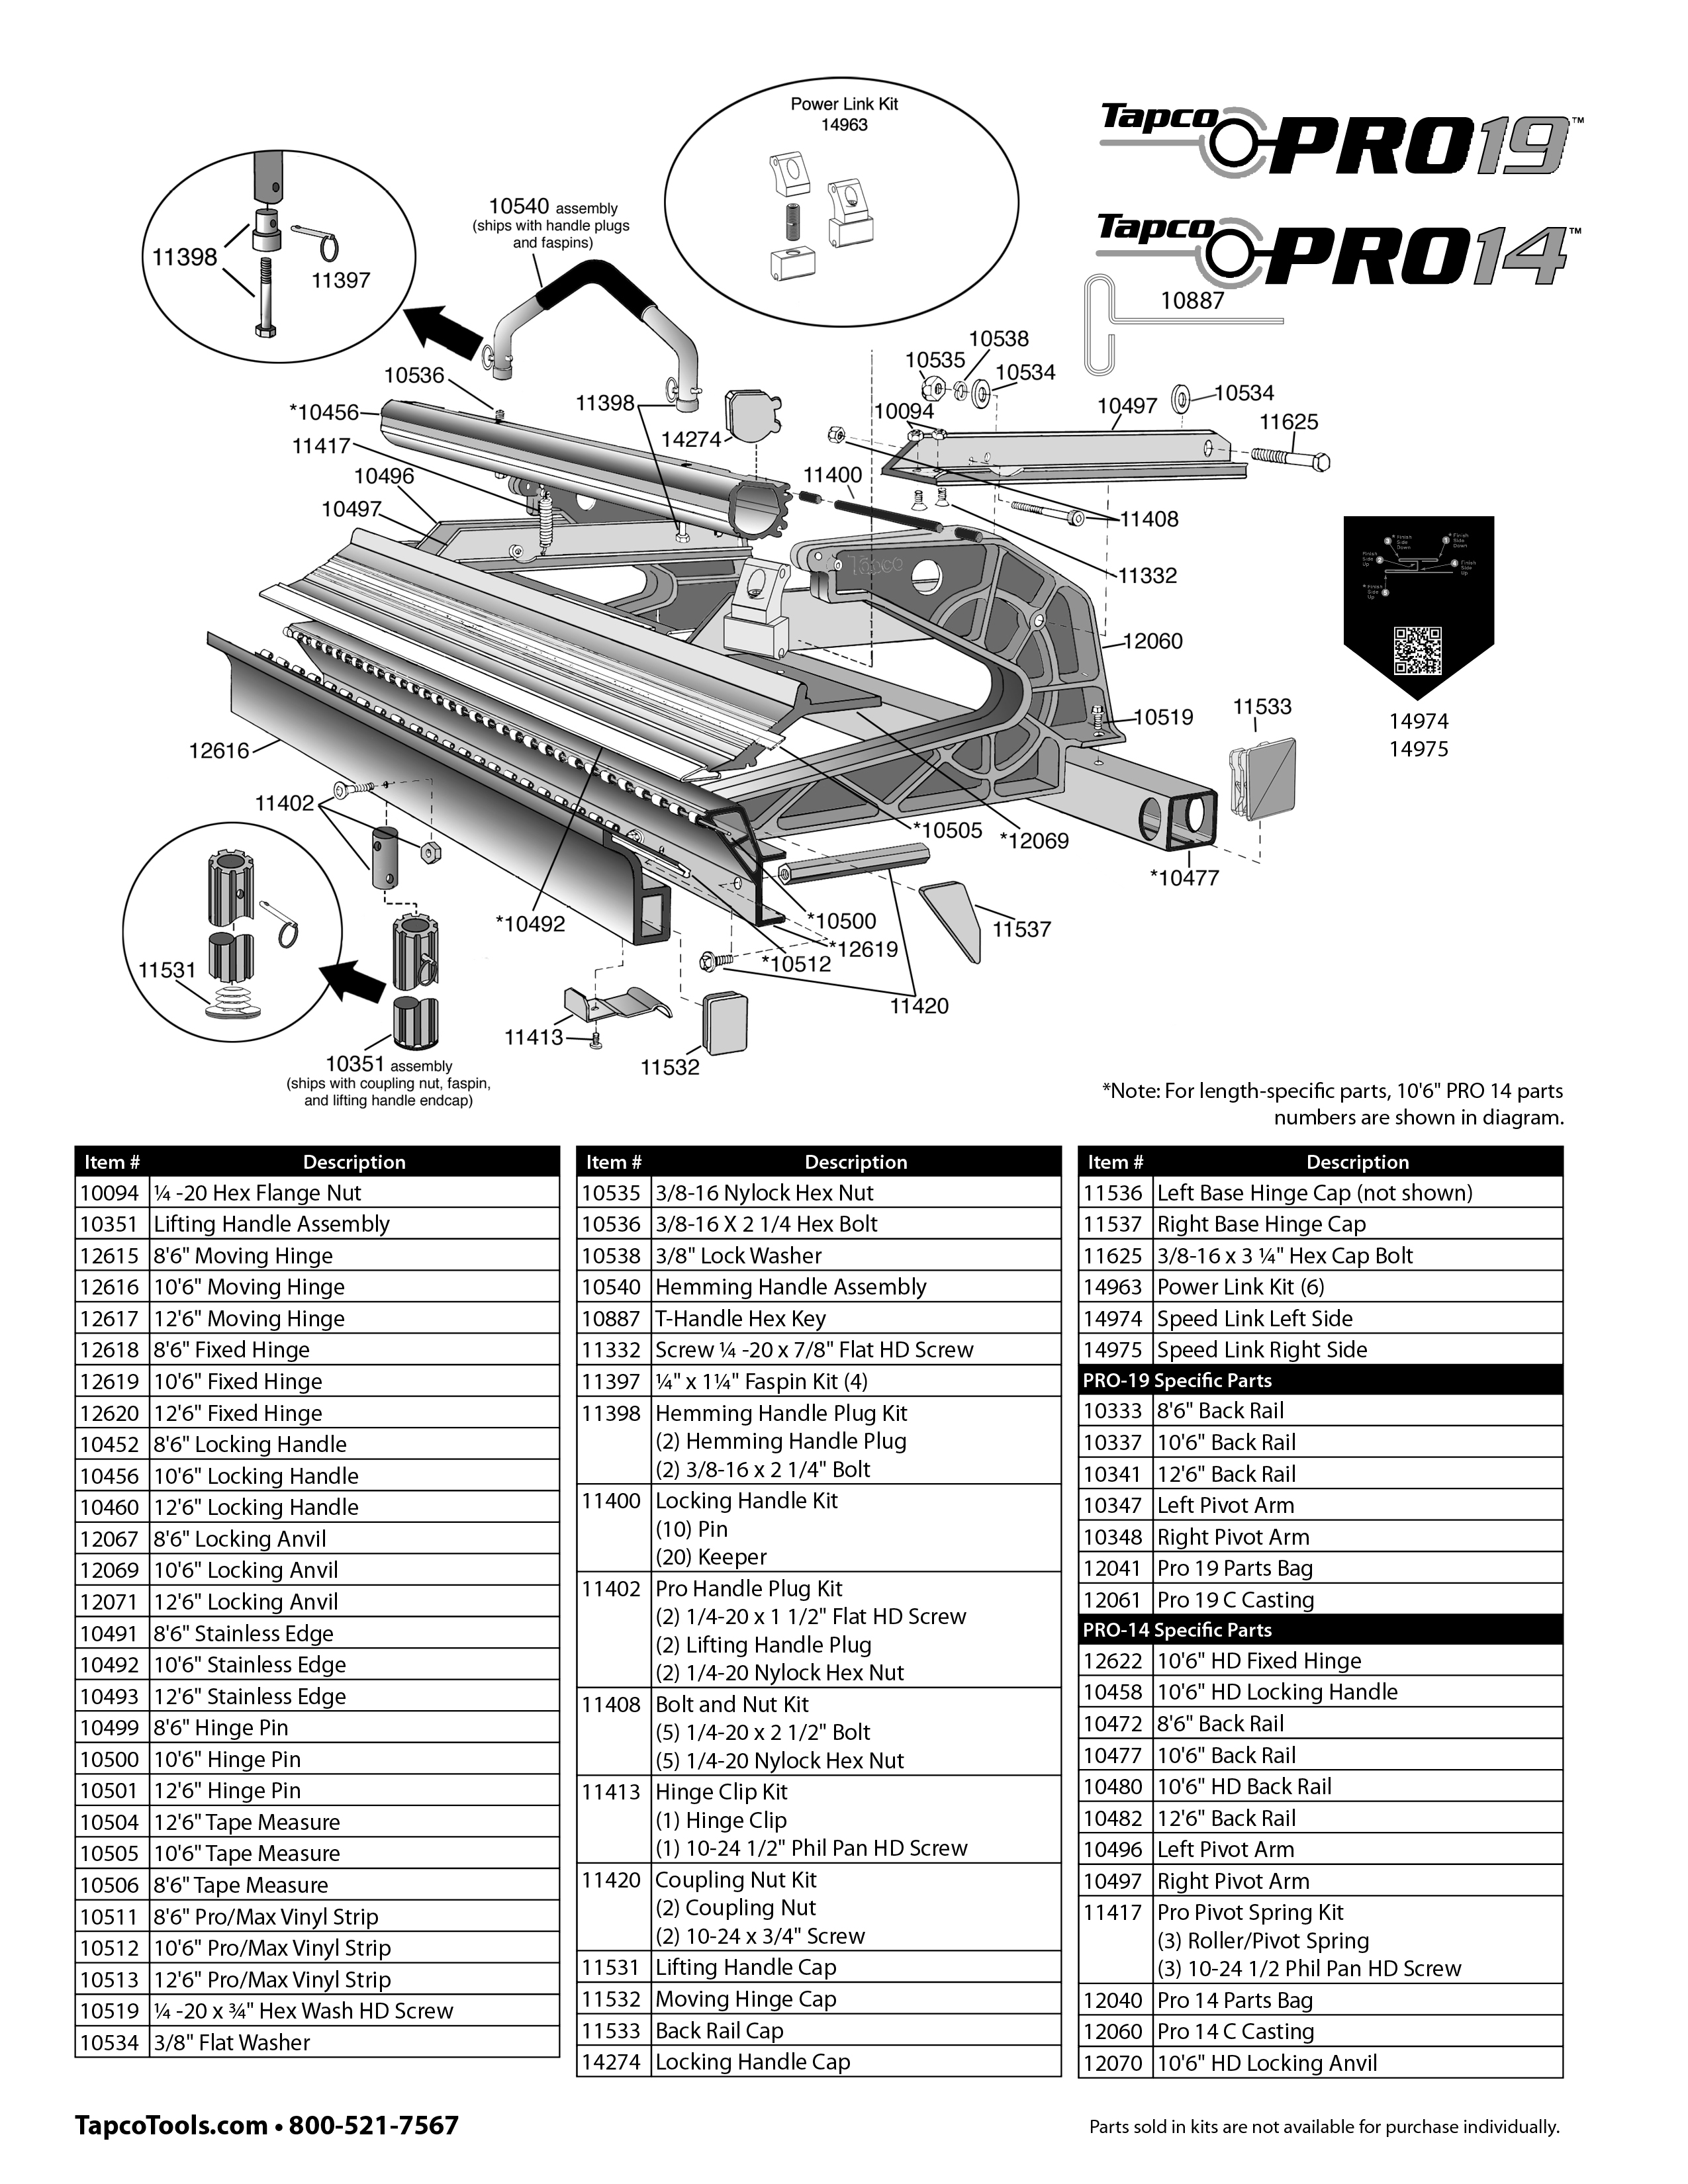 Tapco Pro 14 Replacement Parts From Buymbs Com